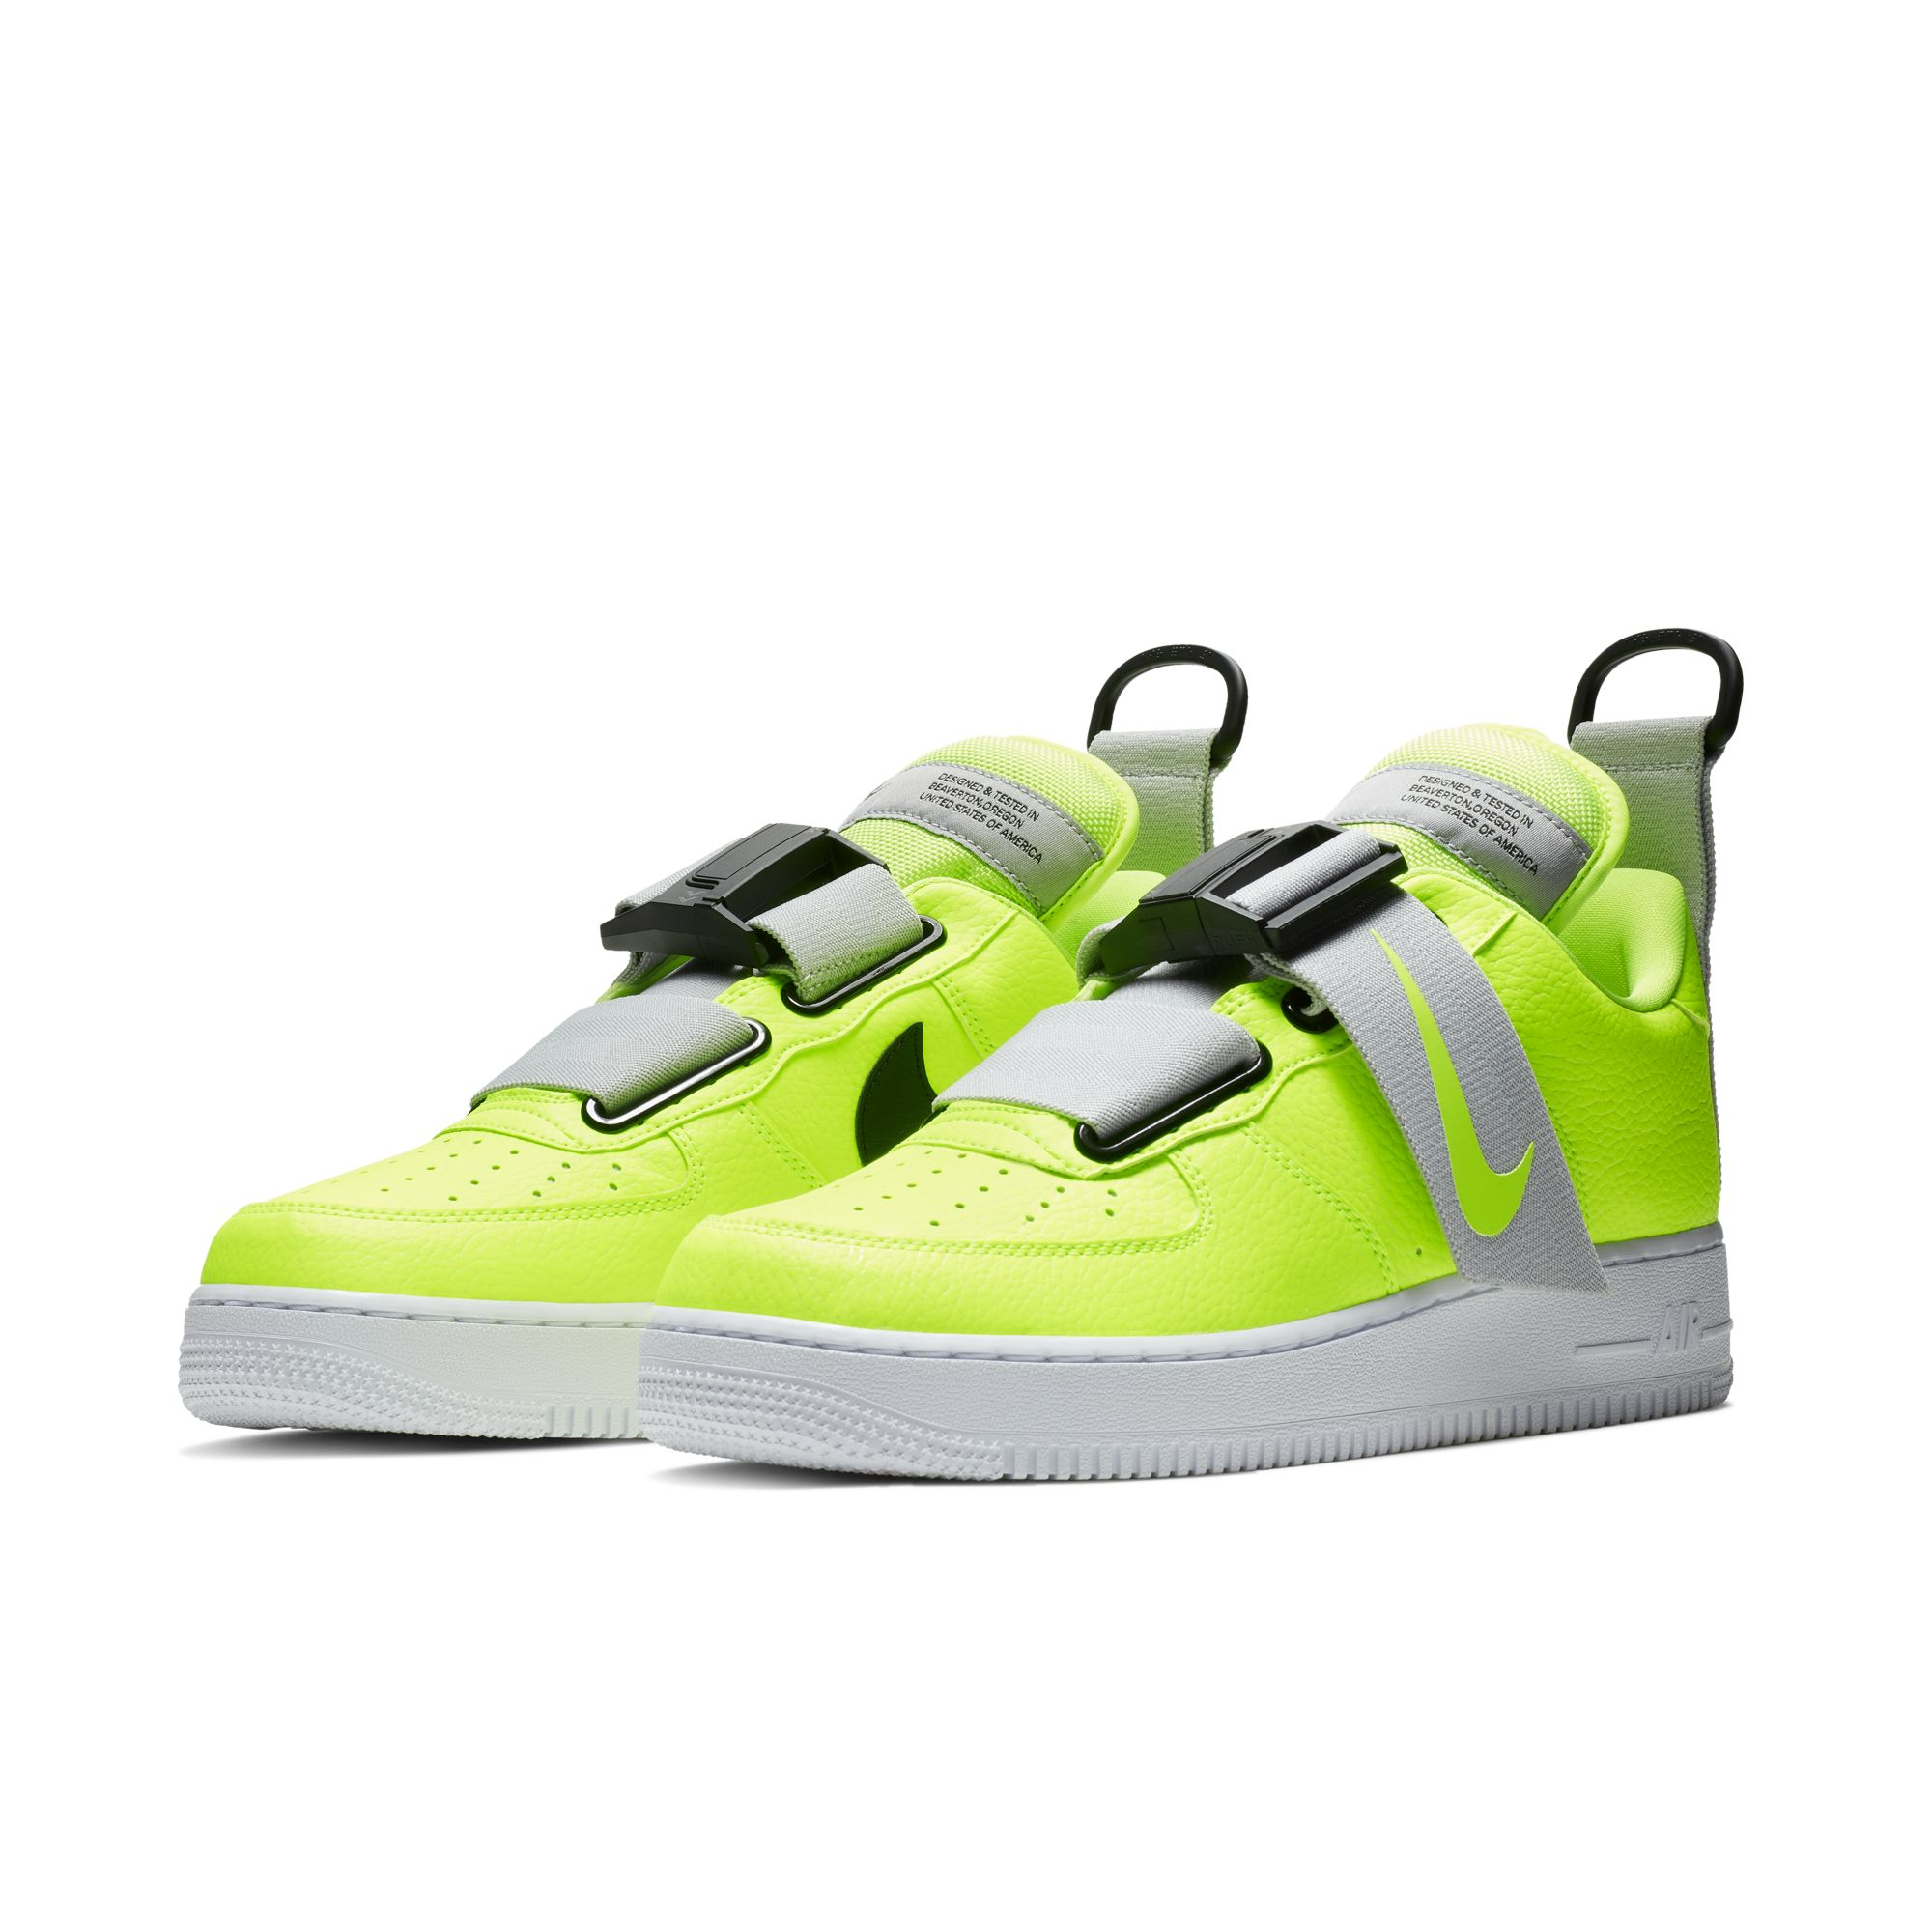 NIKE AIR FORCE 1 UTILITY VOLT:WHITE BLACK 4 WearTesters